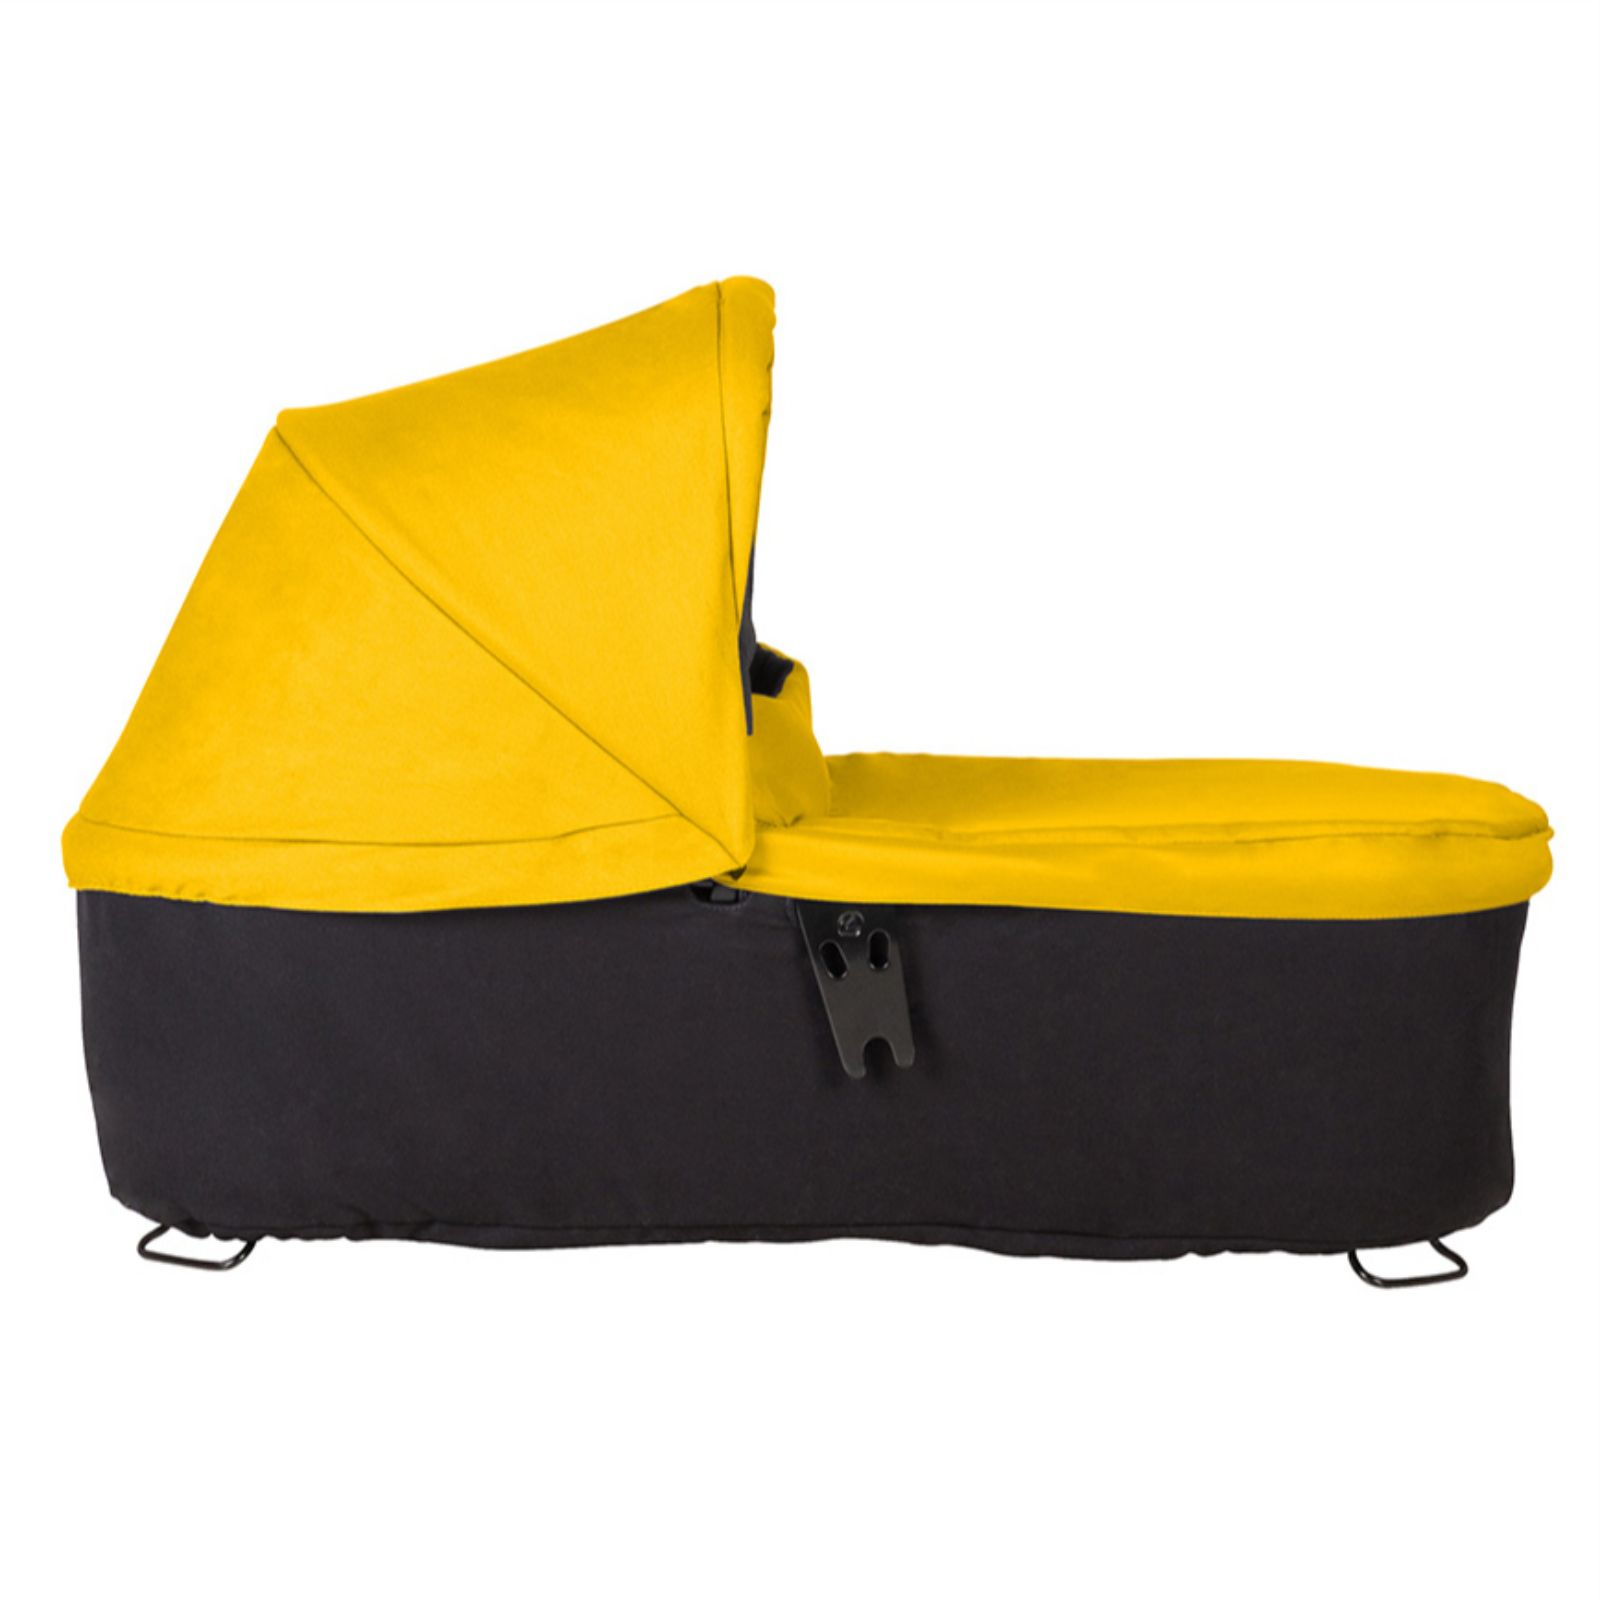 Mountain Buggy Swift Travel System Amp Carrycot Gold Buy